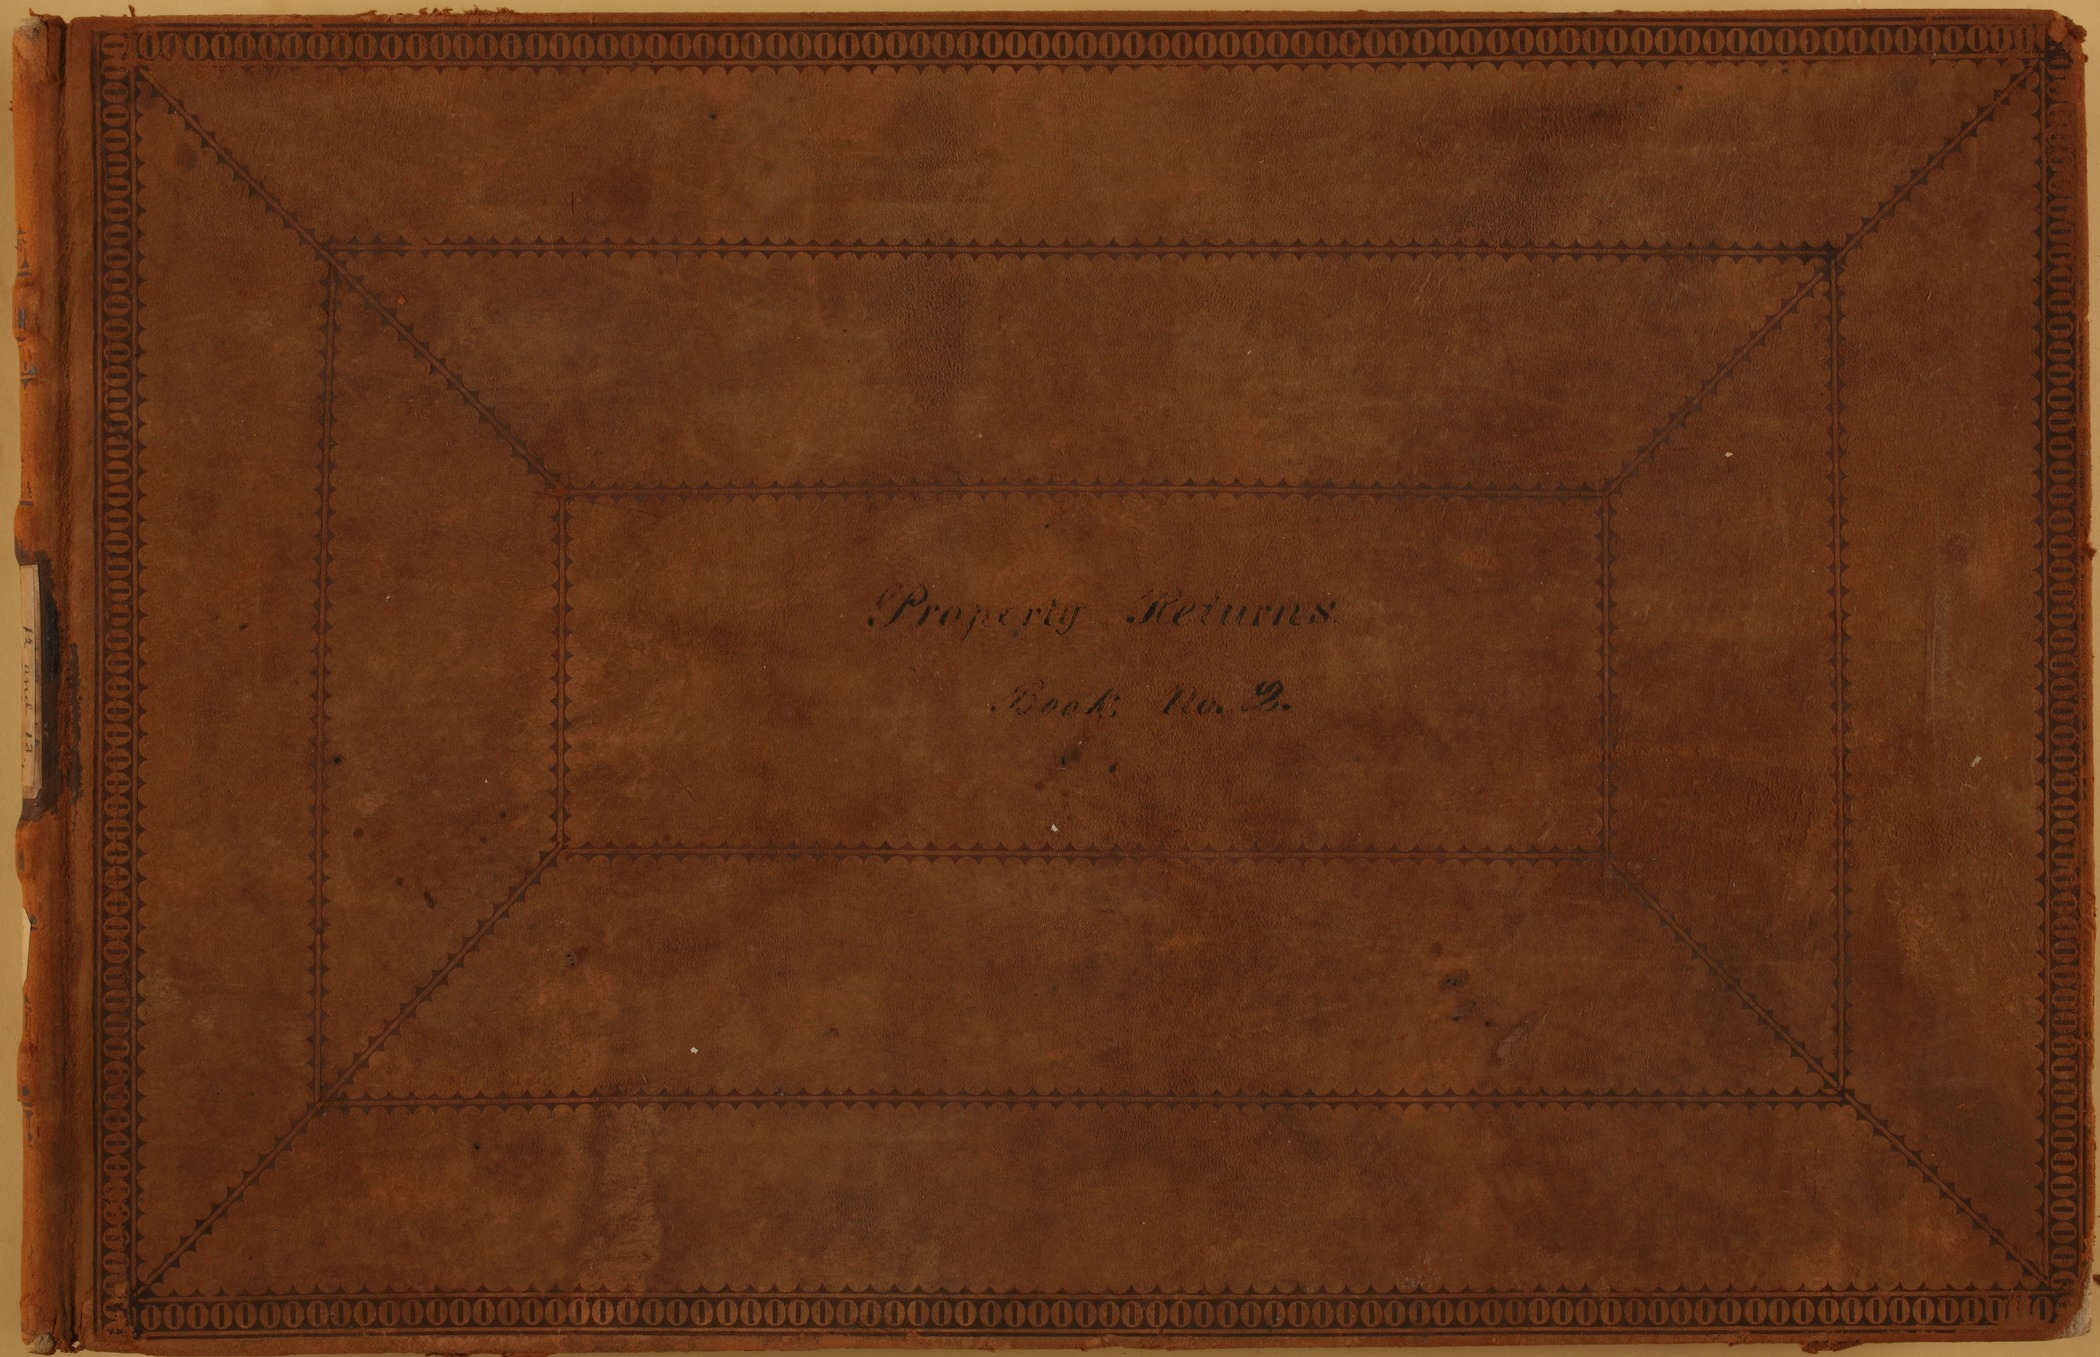 United States Office of Indian Affairs, Central Superintendency, St. Louis, Missouri. Volume 12, Property returns - Front Cover